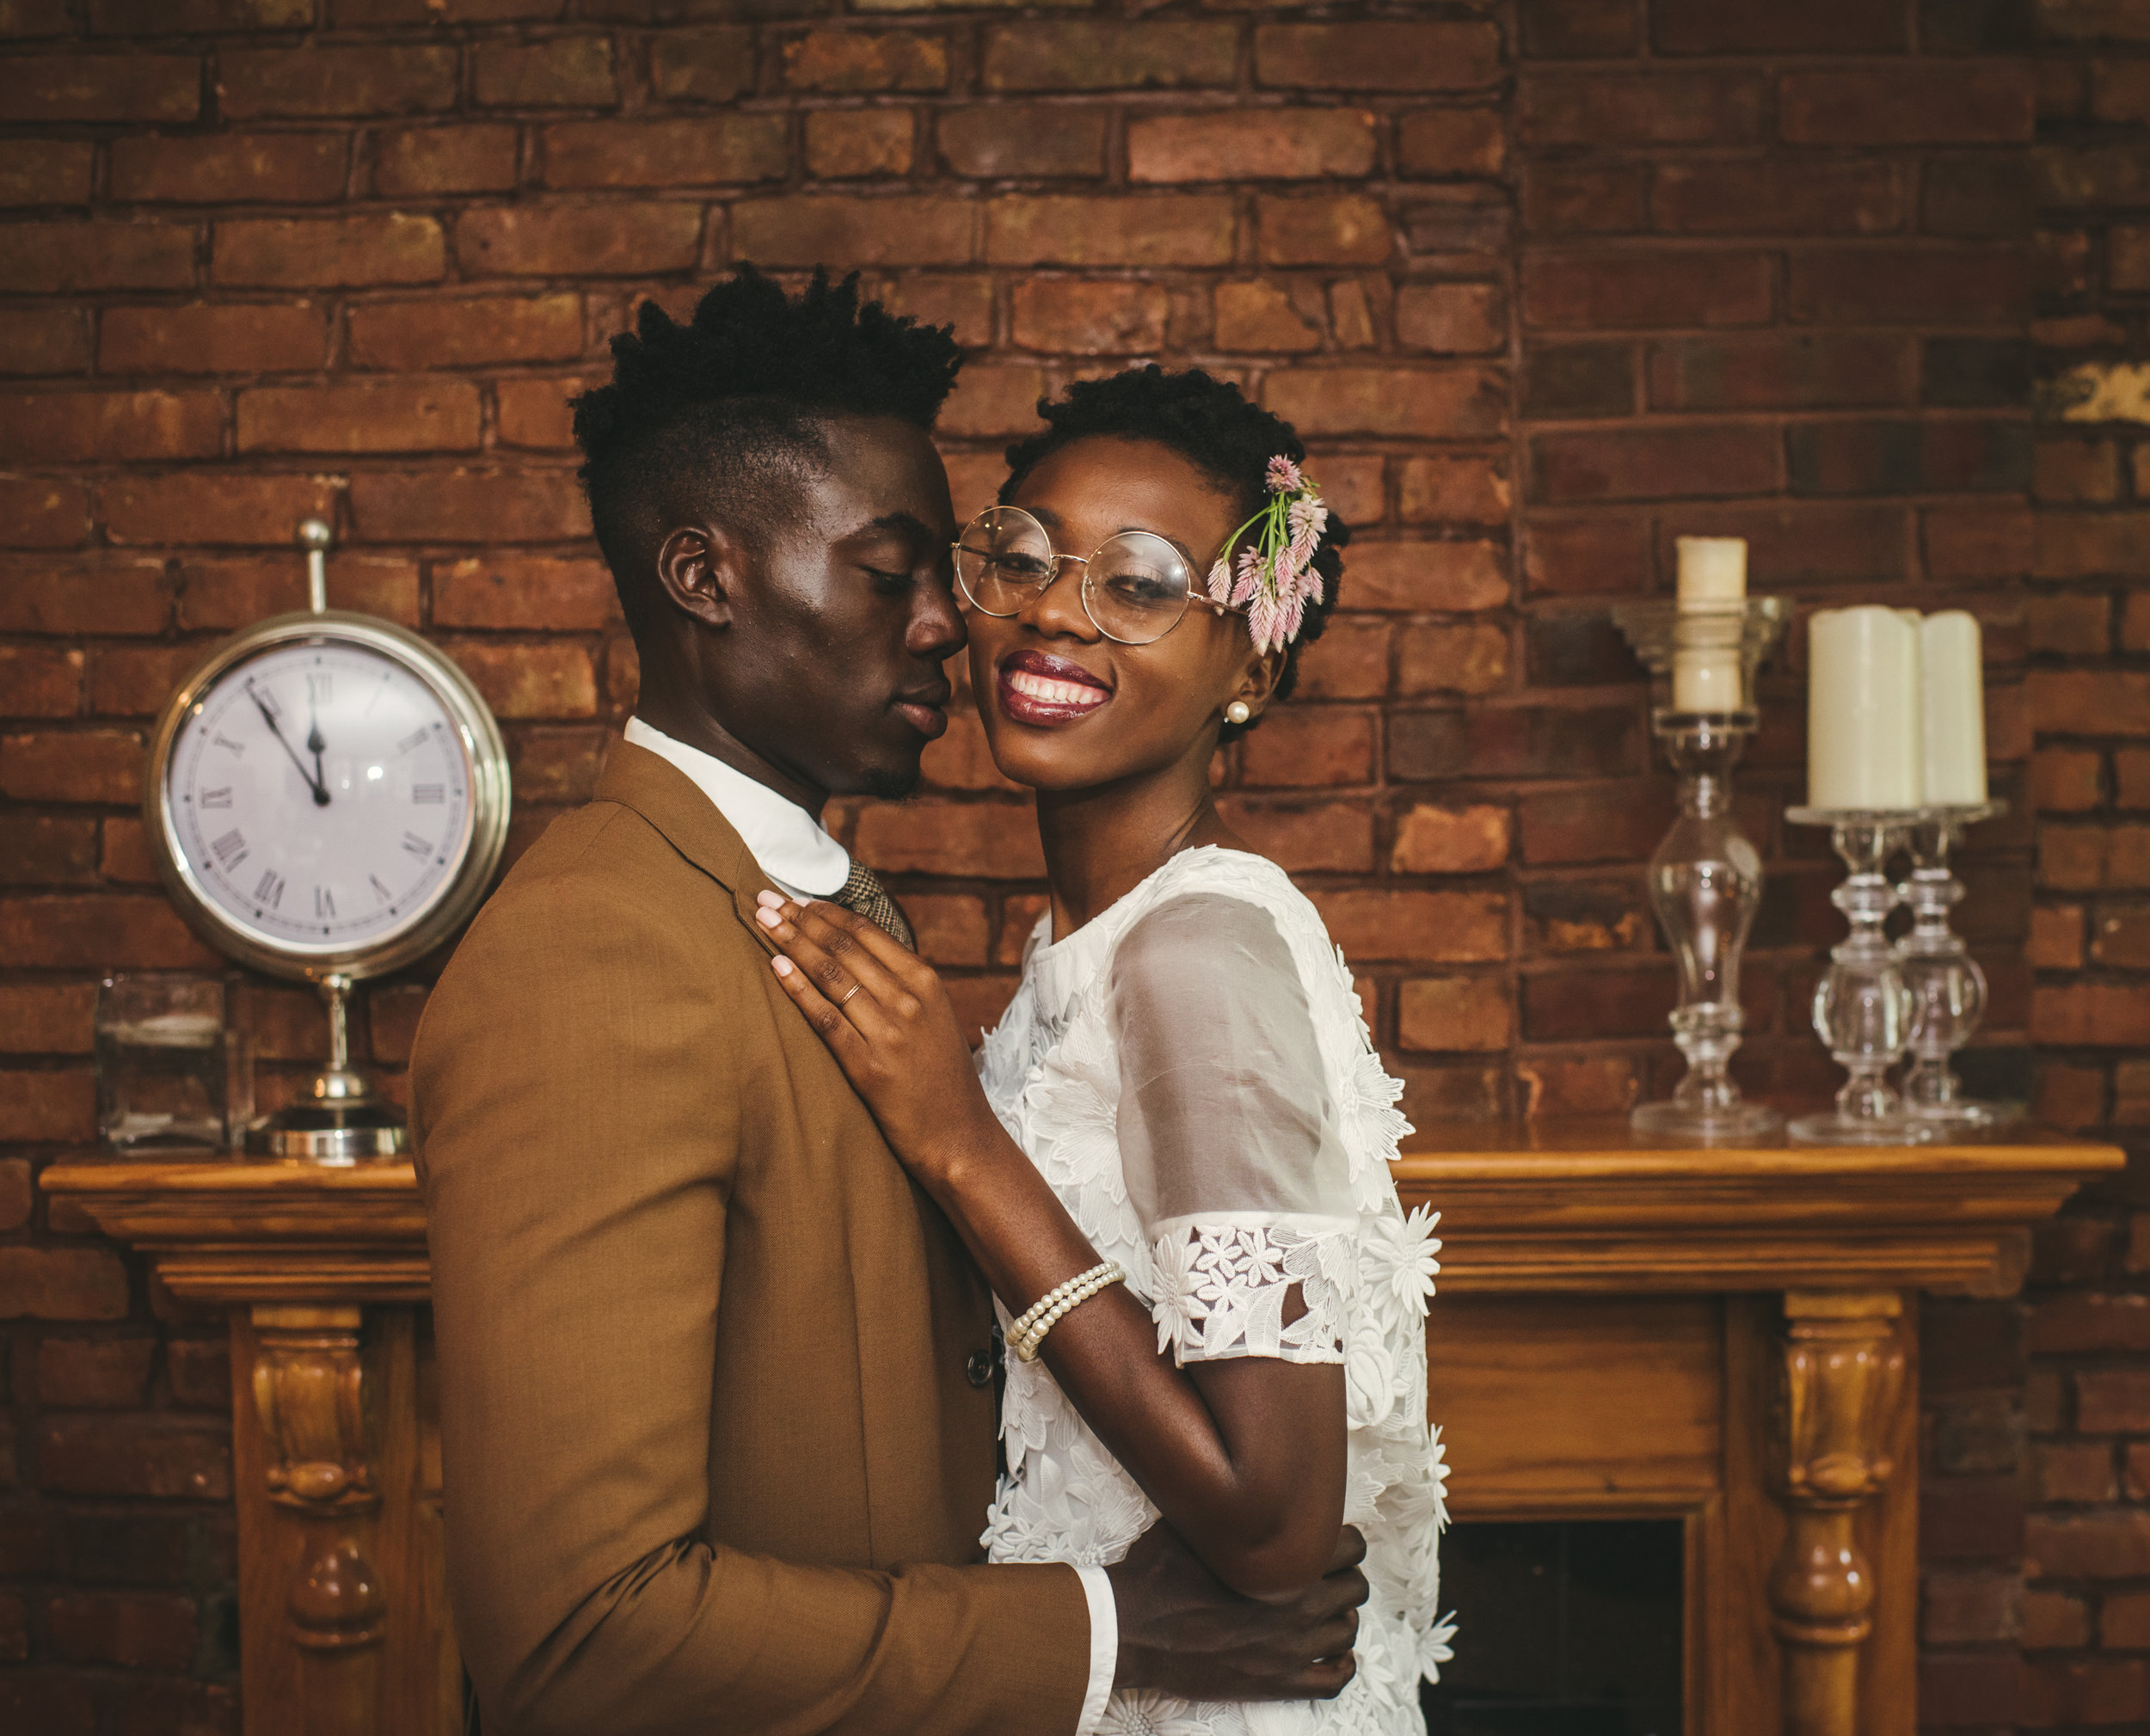 BROOKLYN BRIDE - INTIMATE WEDDING PHOTOGRAPHER - TWOTWENTY by CHI-CHI AGBIM-52.jpg